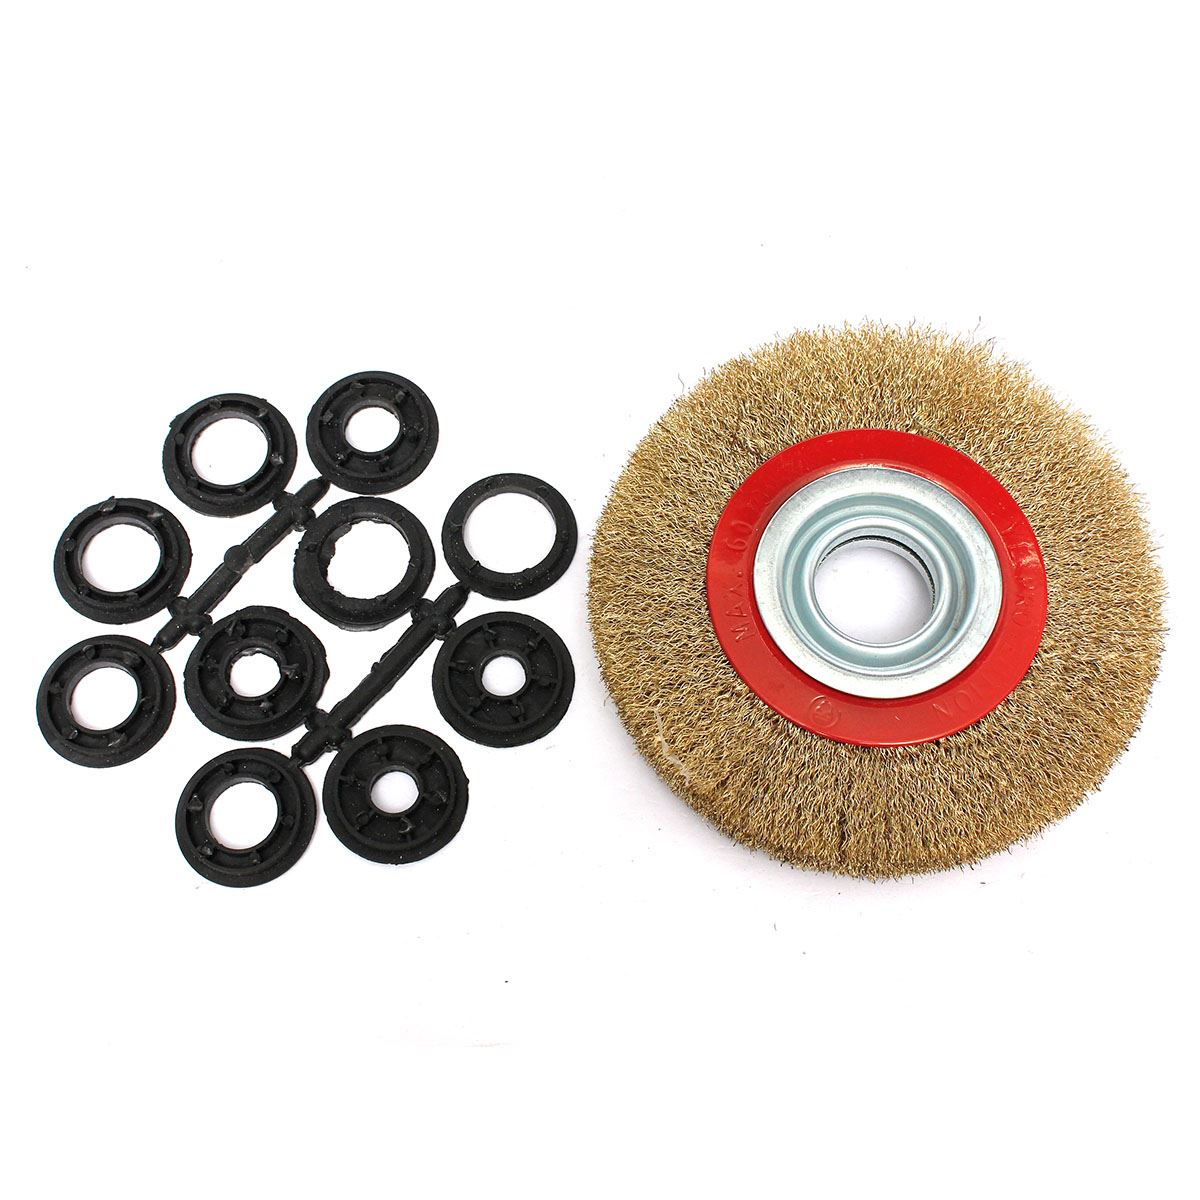 Miraculous Us 12 44 52 Off Top Selling 1Pc 6 Inch 150Mm Steel Flat Wire Wheel Brush With 10Pcs Adaptor Rings For Bench Grinder Polish Best Quality In Brush Evergreenethics Interior Chair Design Evergreenethicsorg